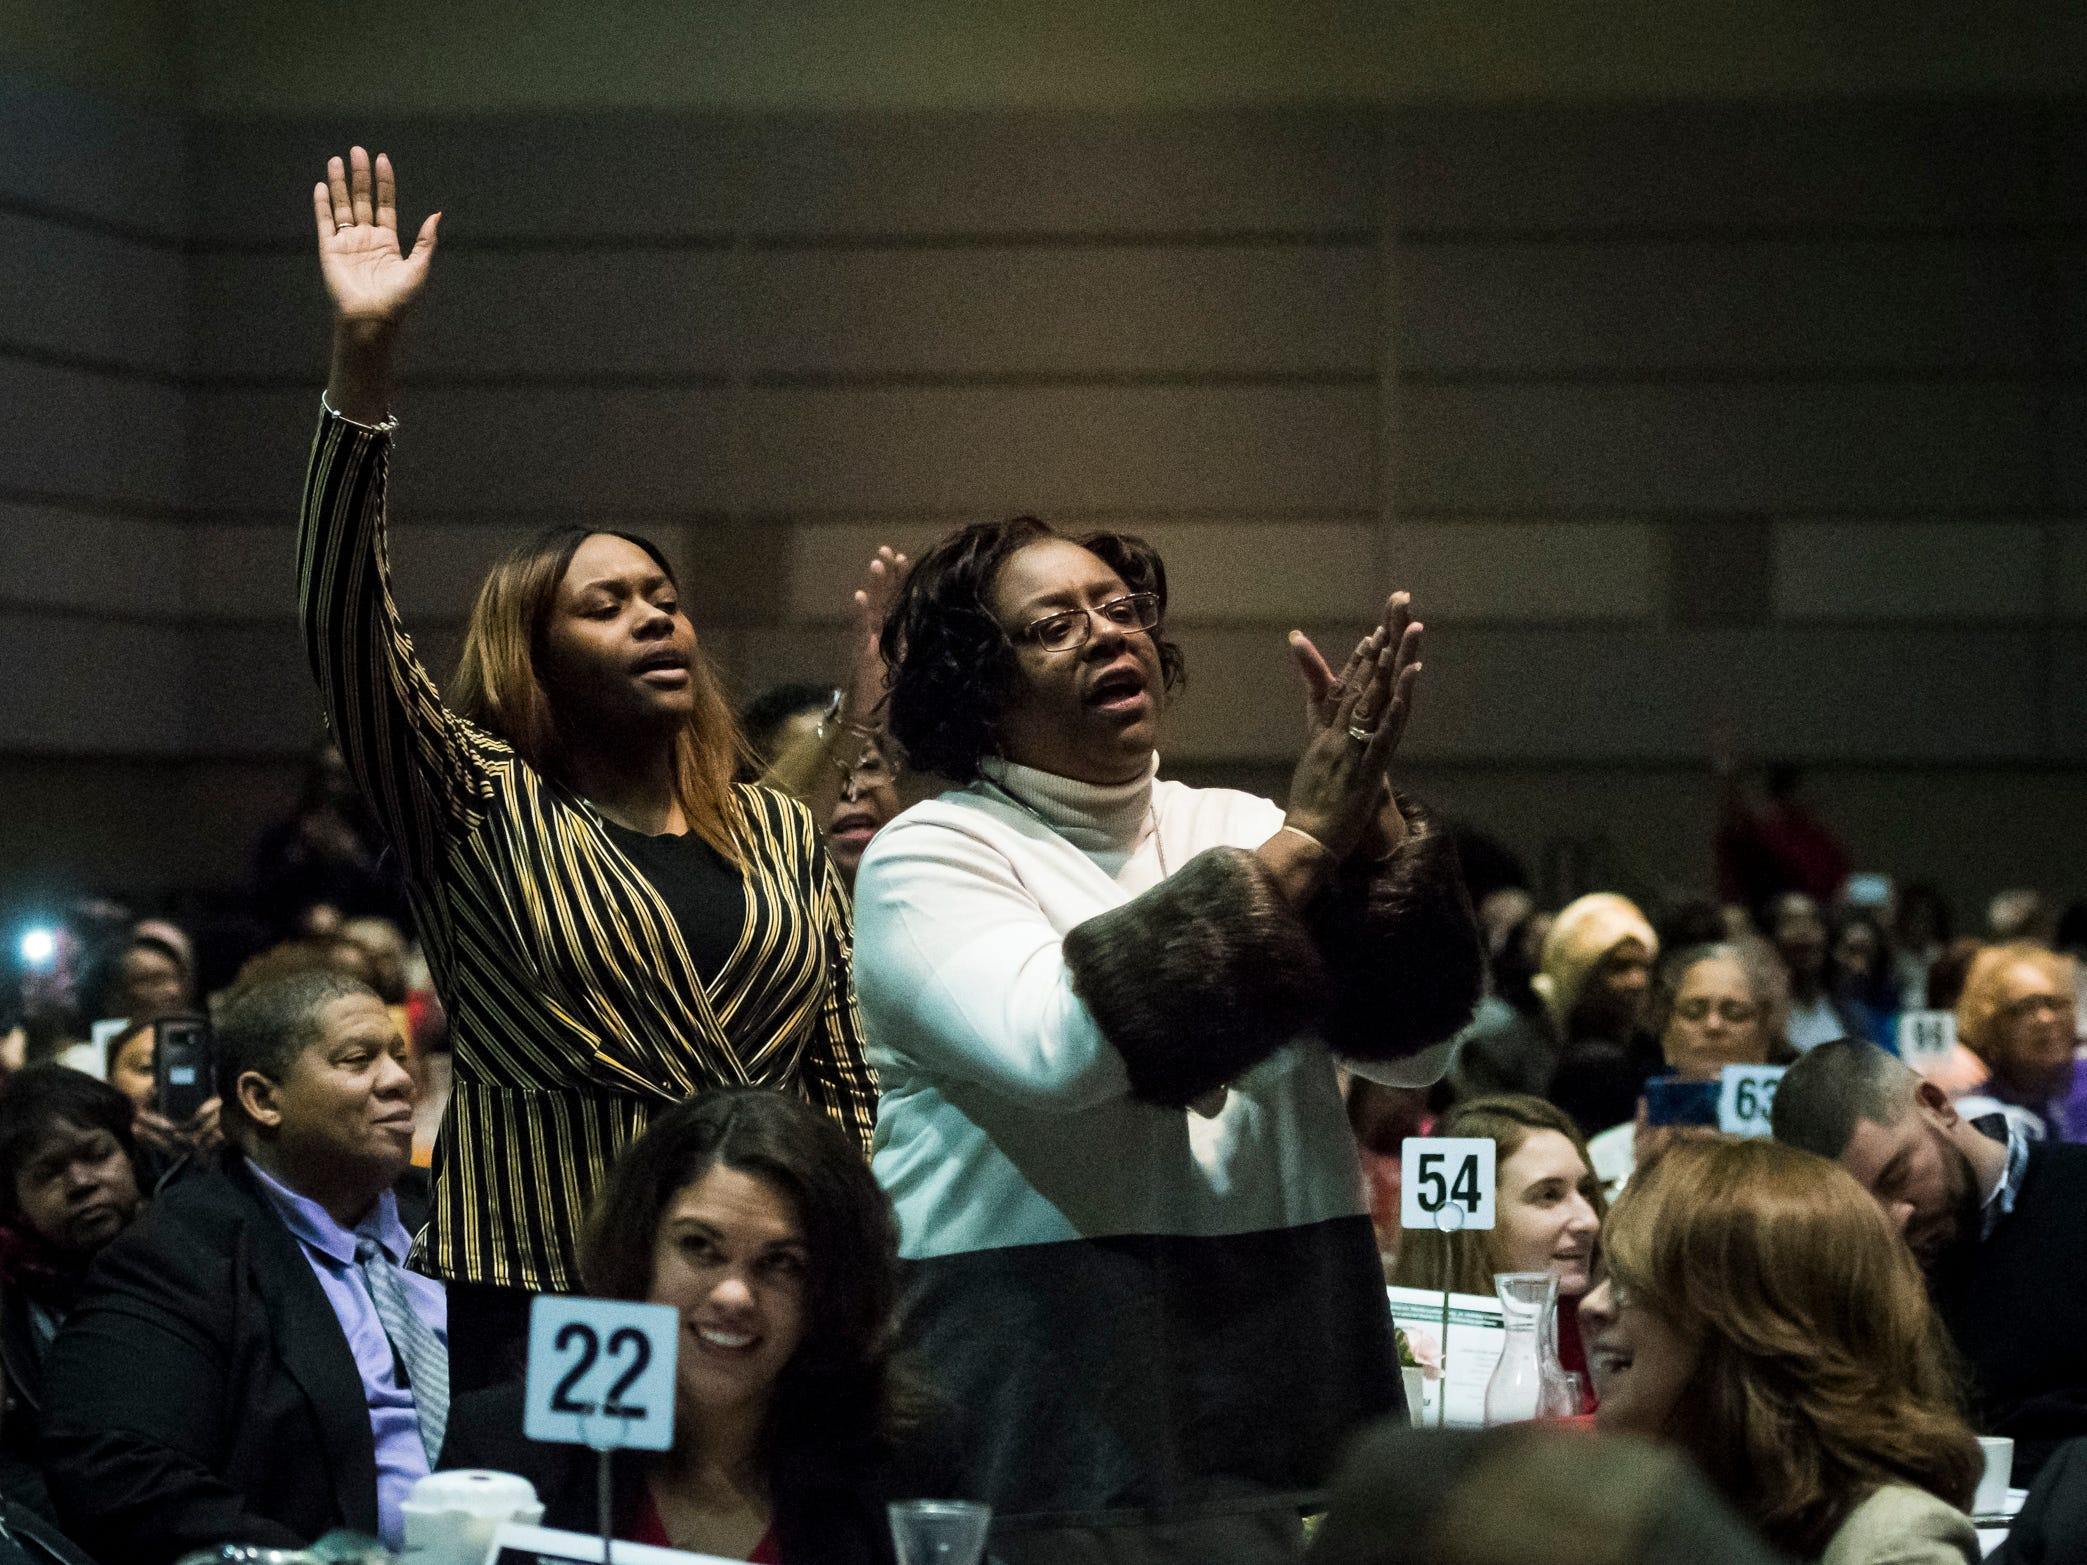 Attendees of the 34th Annual MLK Holiday Luncheon Celebration react to the songsmanship of Pastor Donnie McClurkin, Jr. of Perfecting Faith Church in Freeport, New York, as he performs Monday, Jan. 21, 2019, at The Lansing Center in downtown Lansing, Michigan.  McClurkin is an American gospel singer and minister, and has won many awards, inluding three Grammy Awards.  [AP Photo/Matthew Dae Smith/Lansing State Journal]